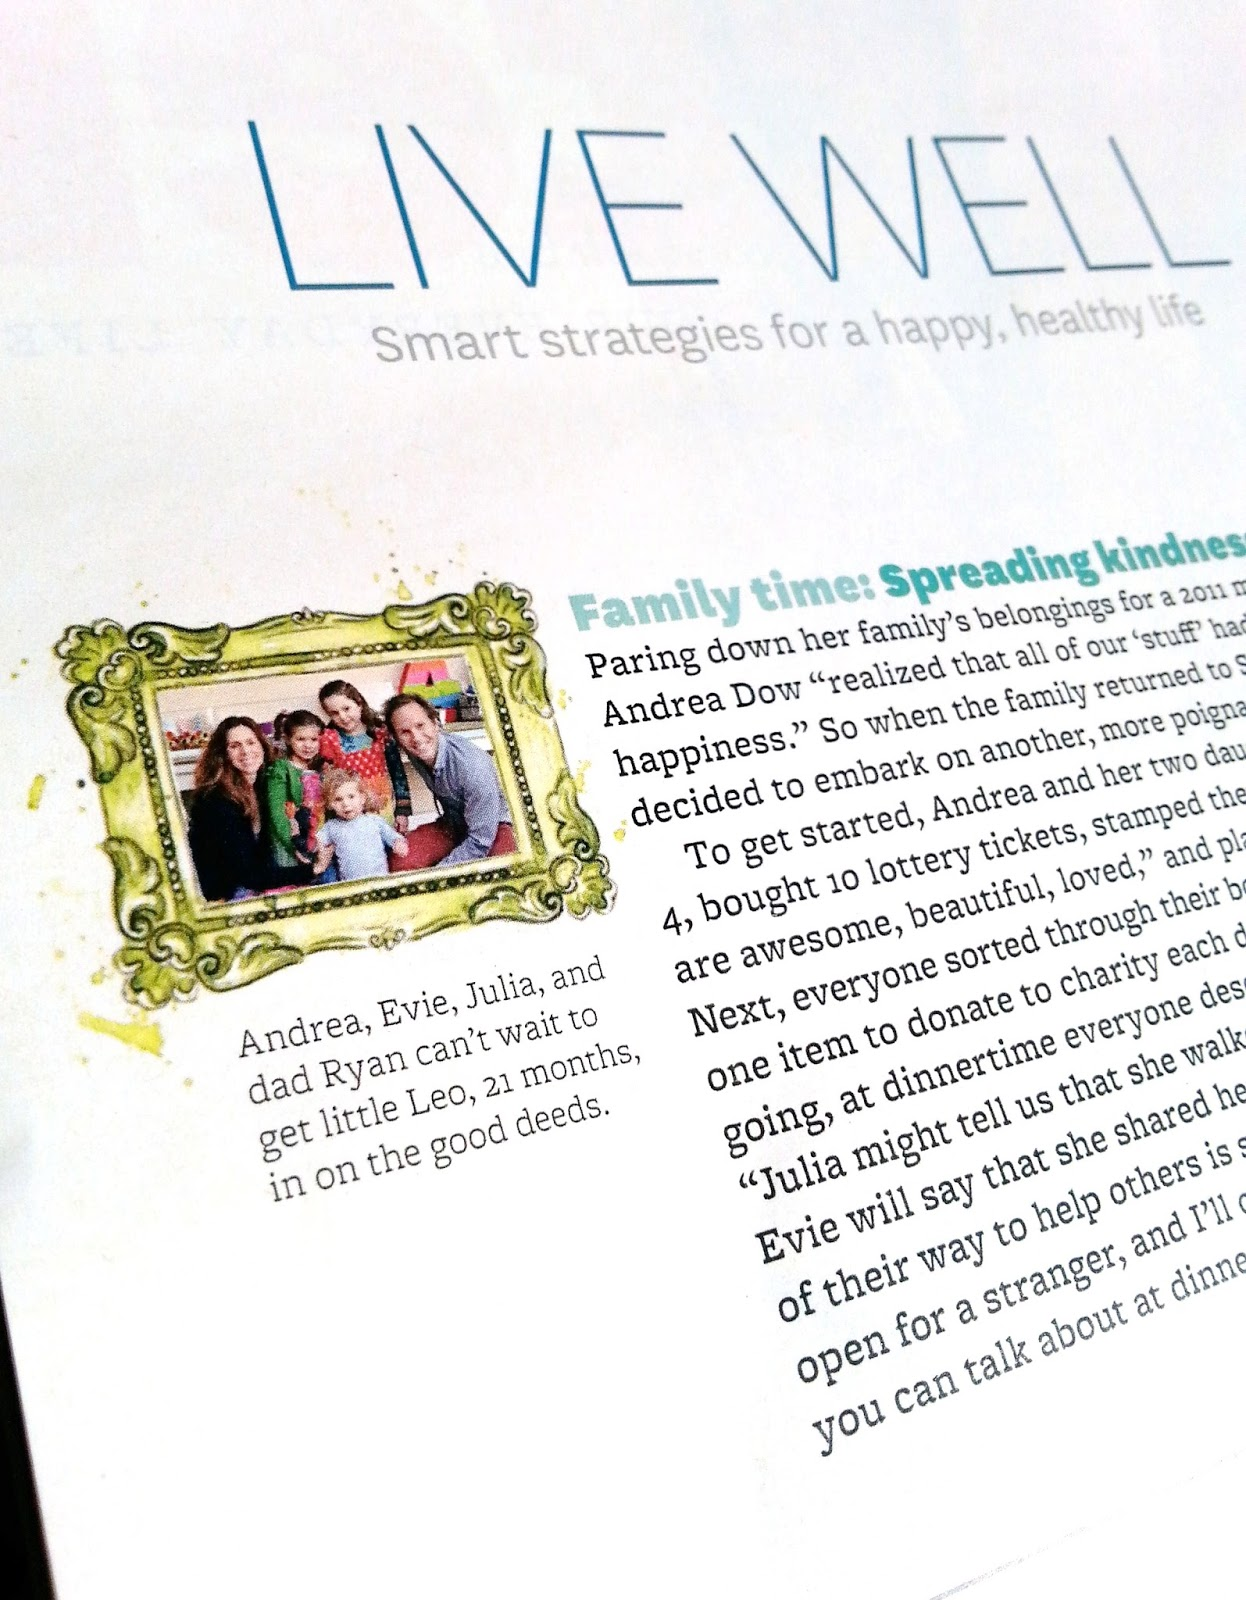 Amy holliday illustration better homes and gardens live well friday 8 august 2014 jeuxipadfo Choice Image